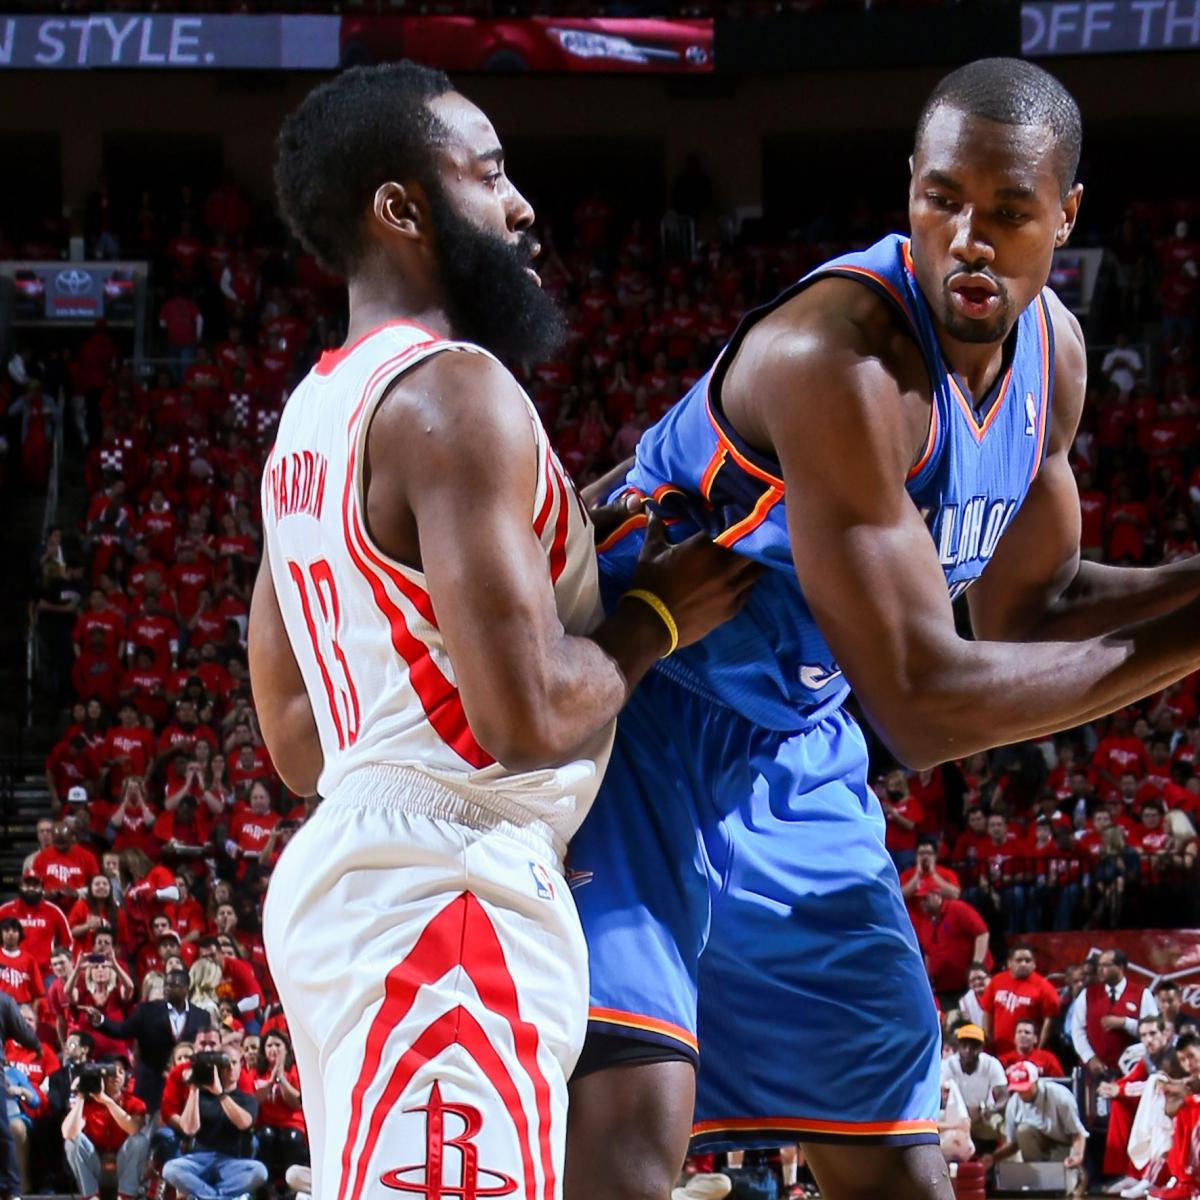 Thunder Vs. Rockets Game 6: Live Score, Highlights And